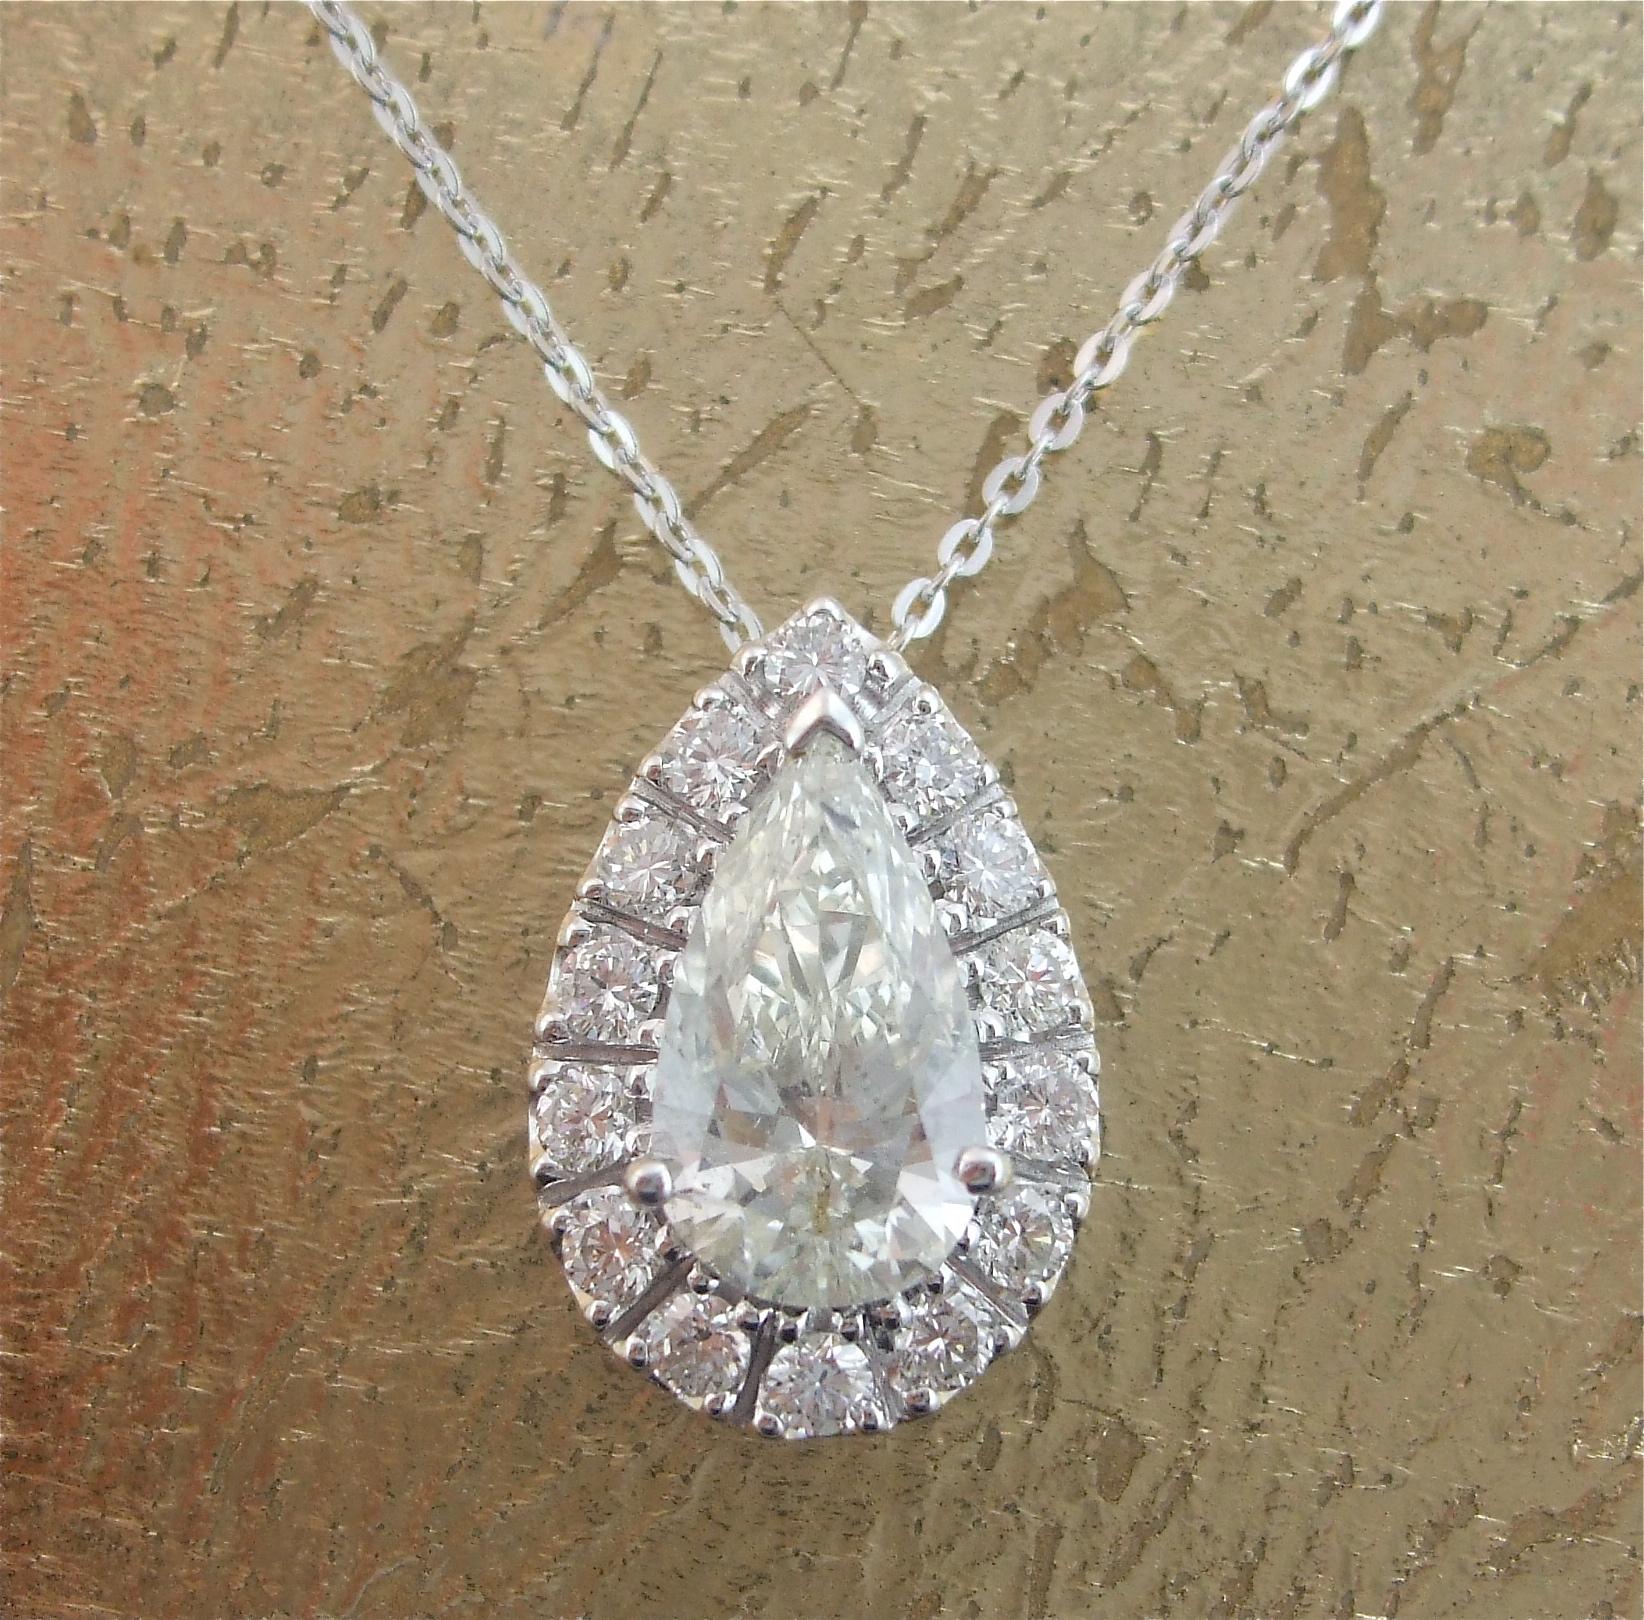 Pendant in Pear Shaped Diamond - Item No: 0013742